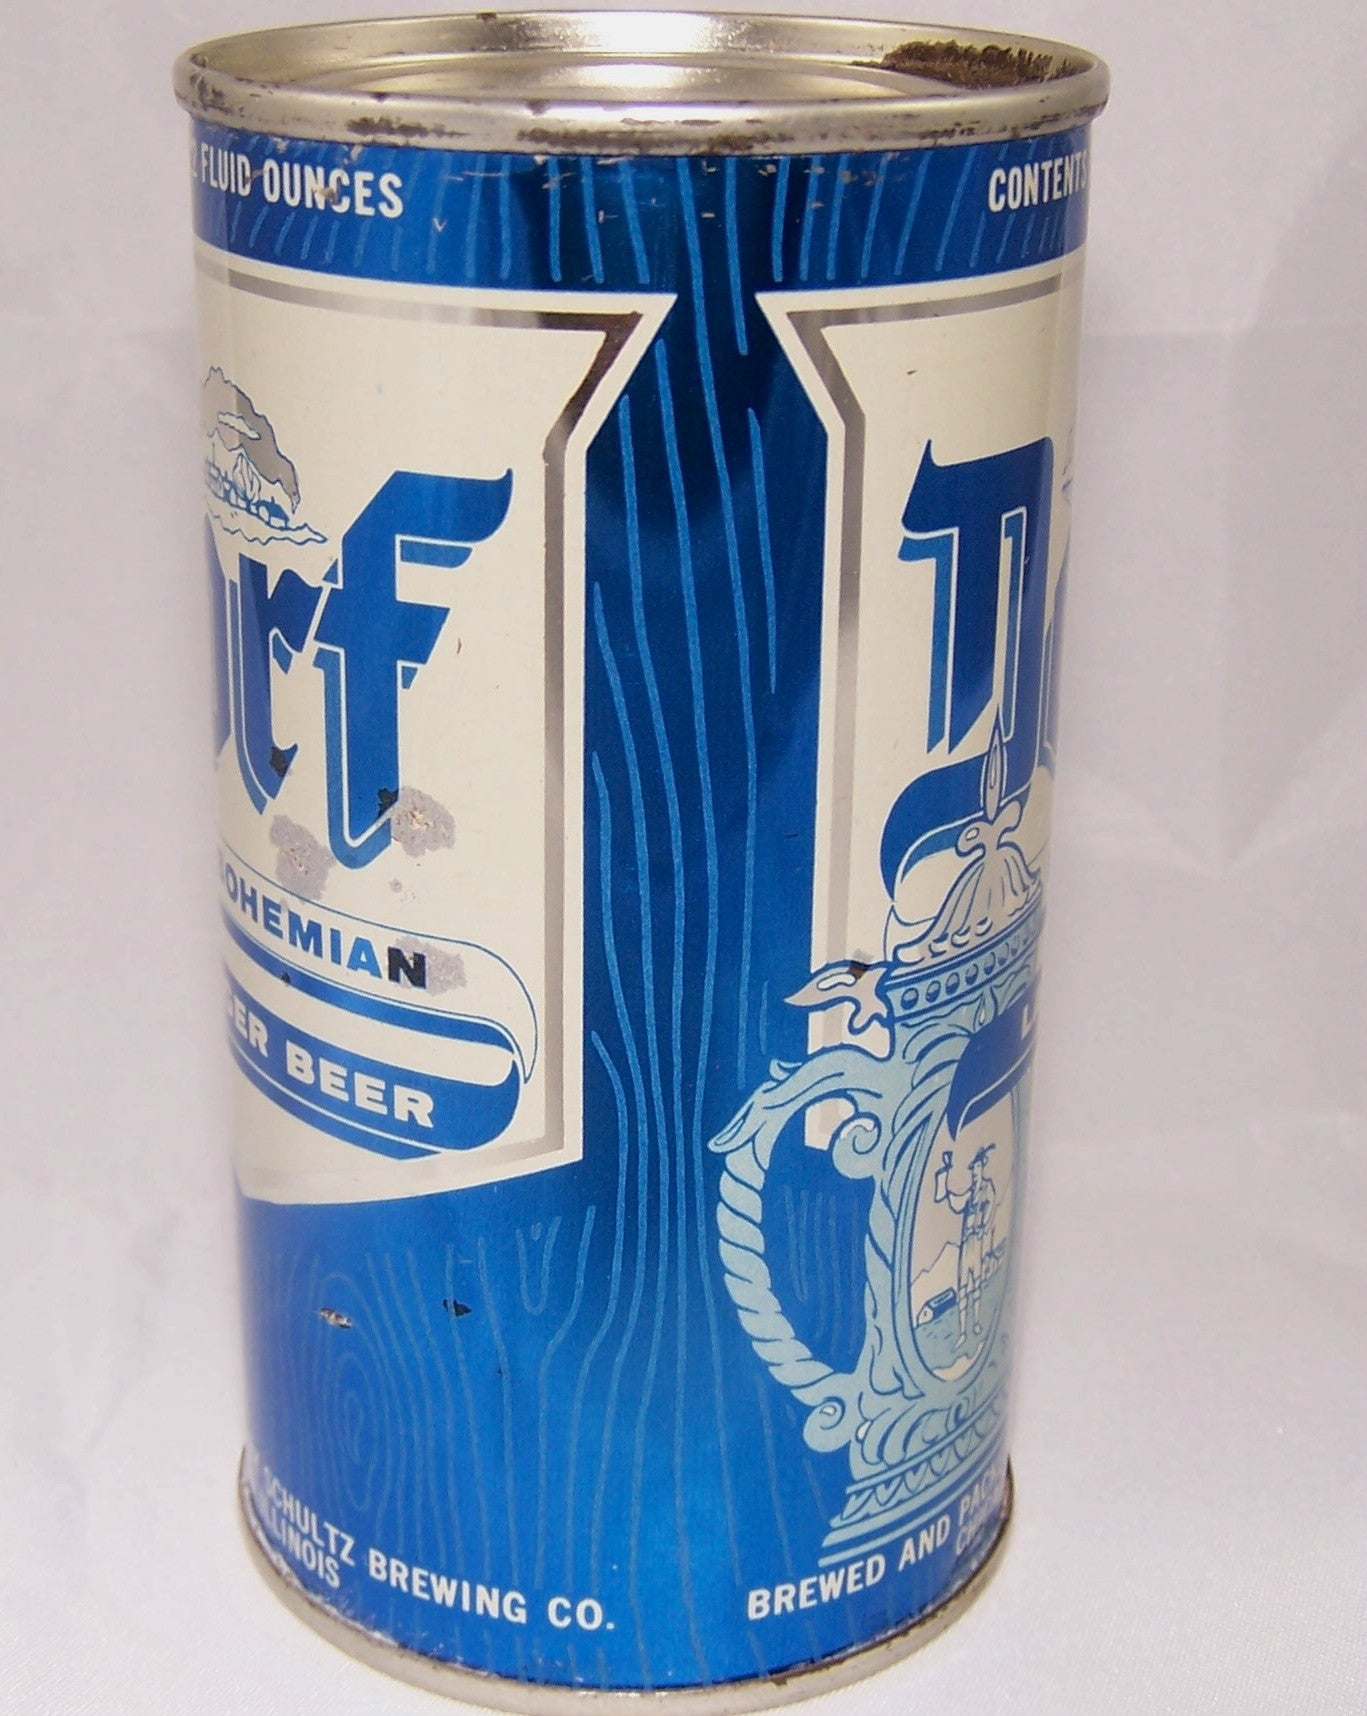 Dorf Bohemian Lager Beer, USBC 54-25, Grade 1 Sold on 5/11/15